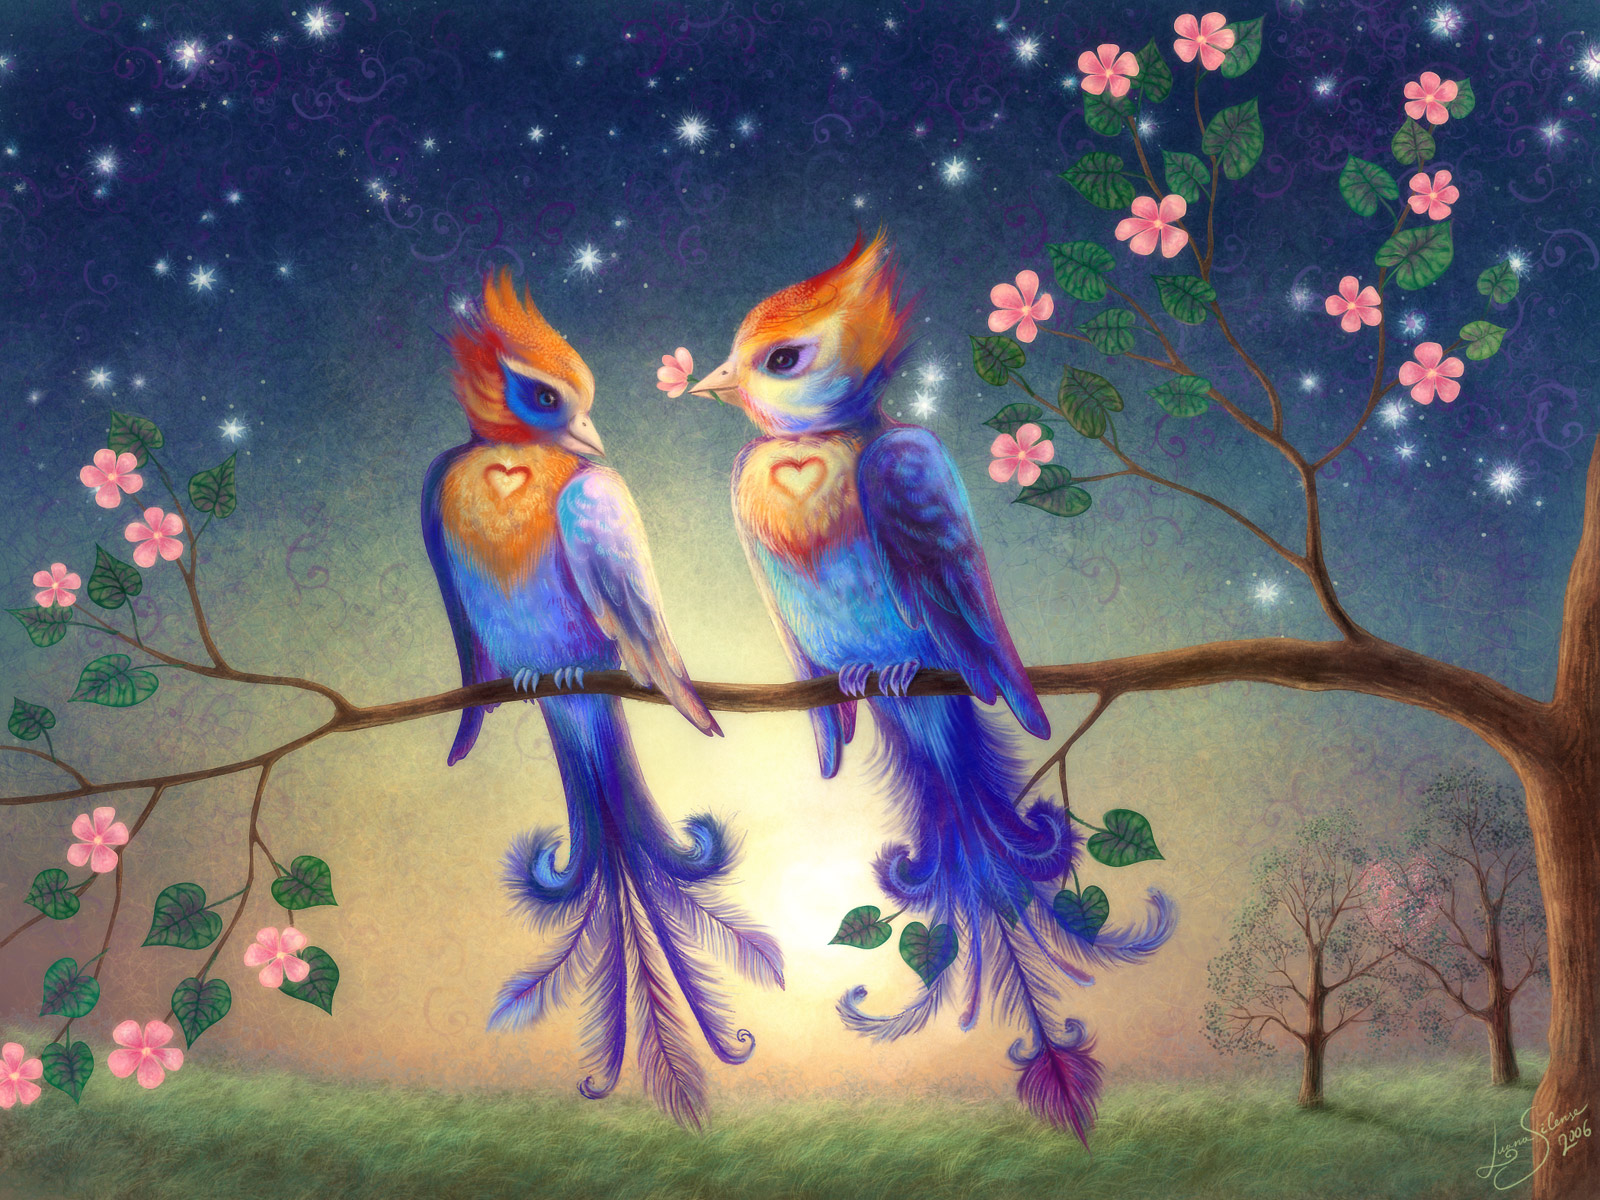 Beautiful Love Birds Wallpapers, Free Love Birds Pictures, Love 1600x1200